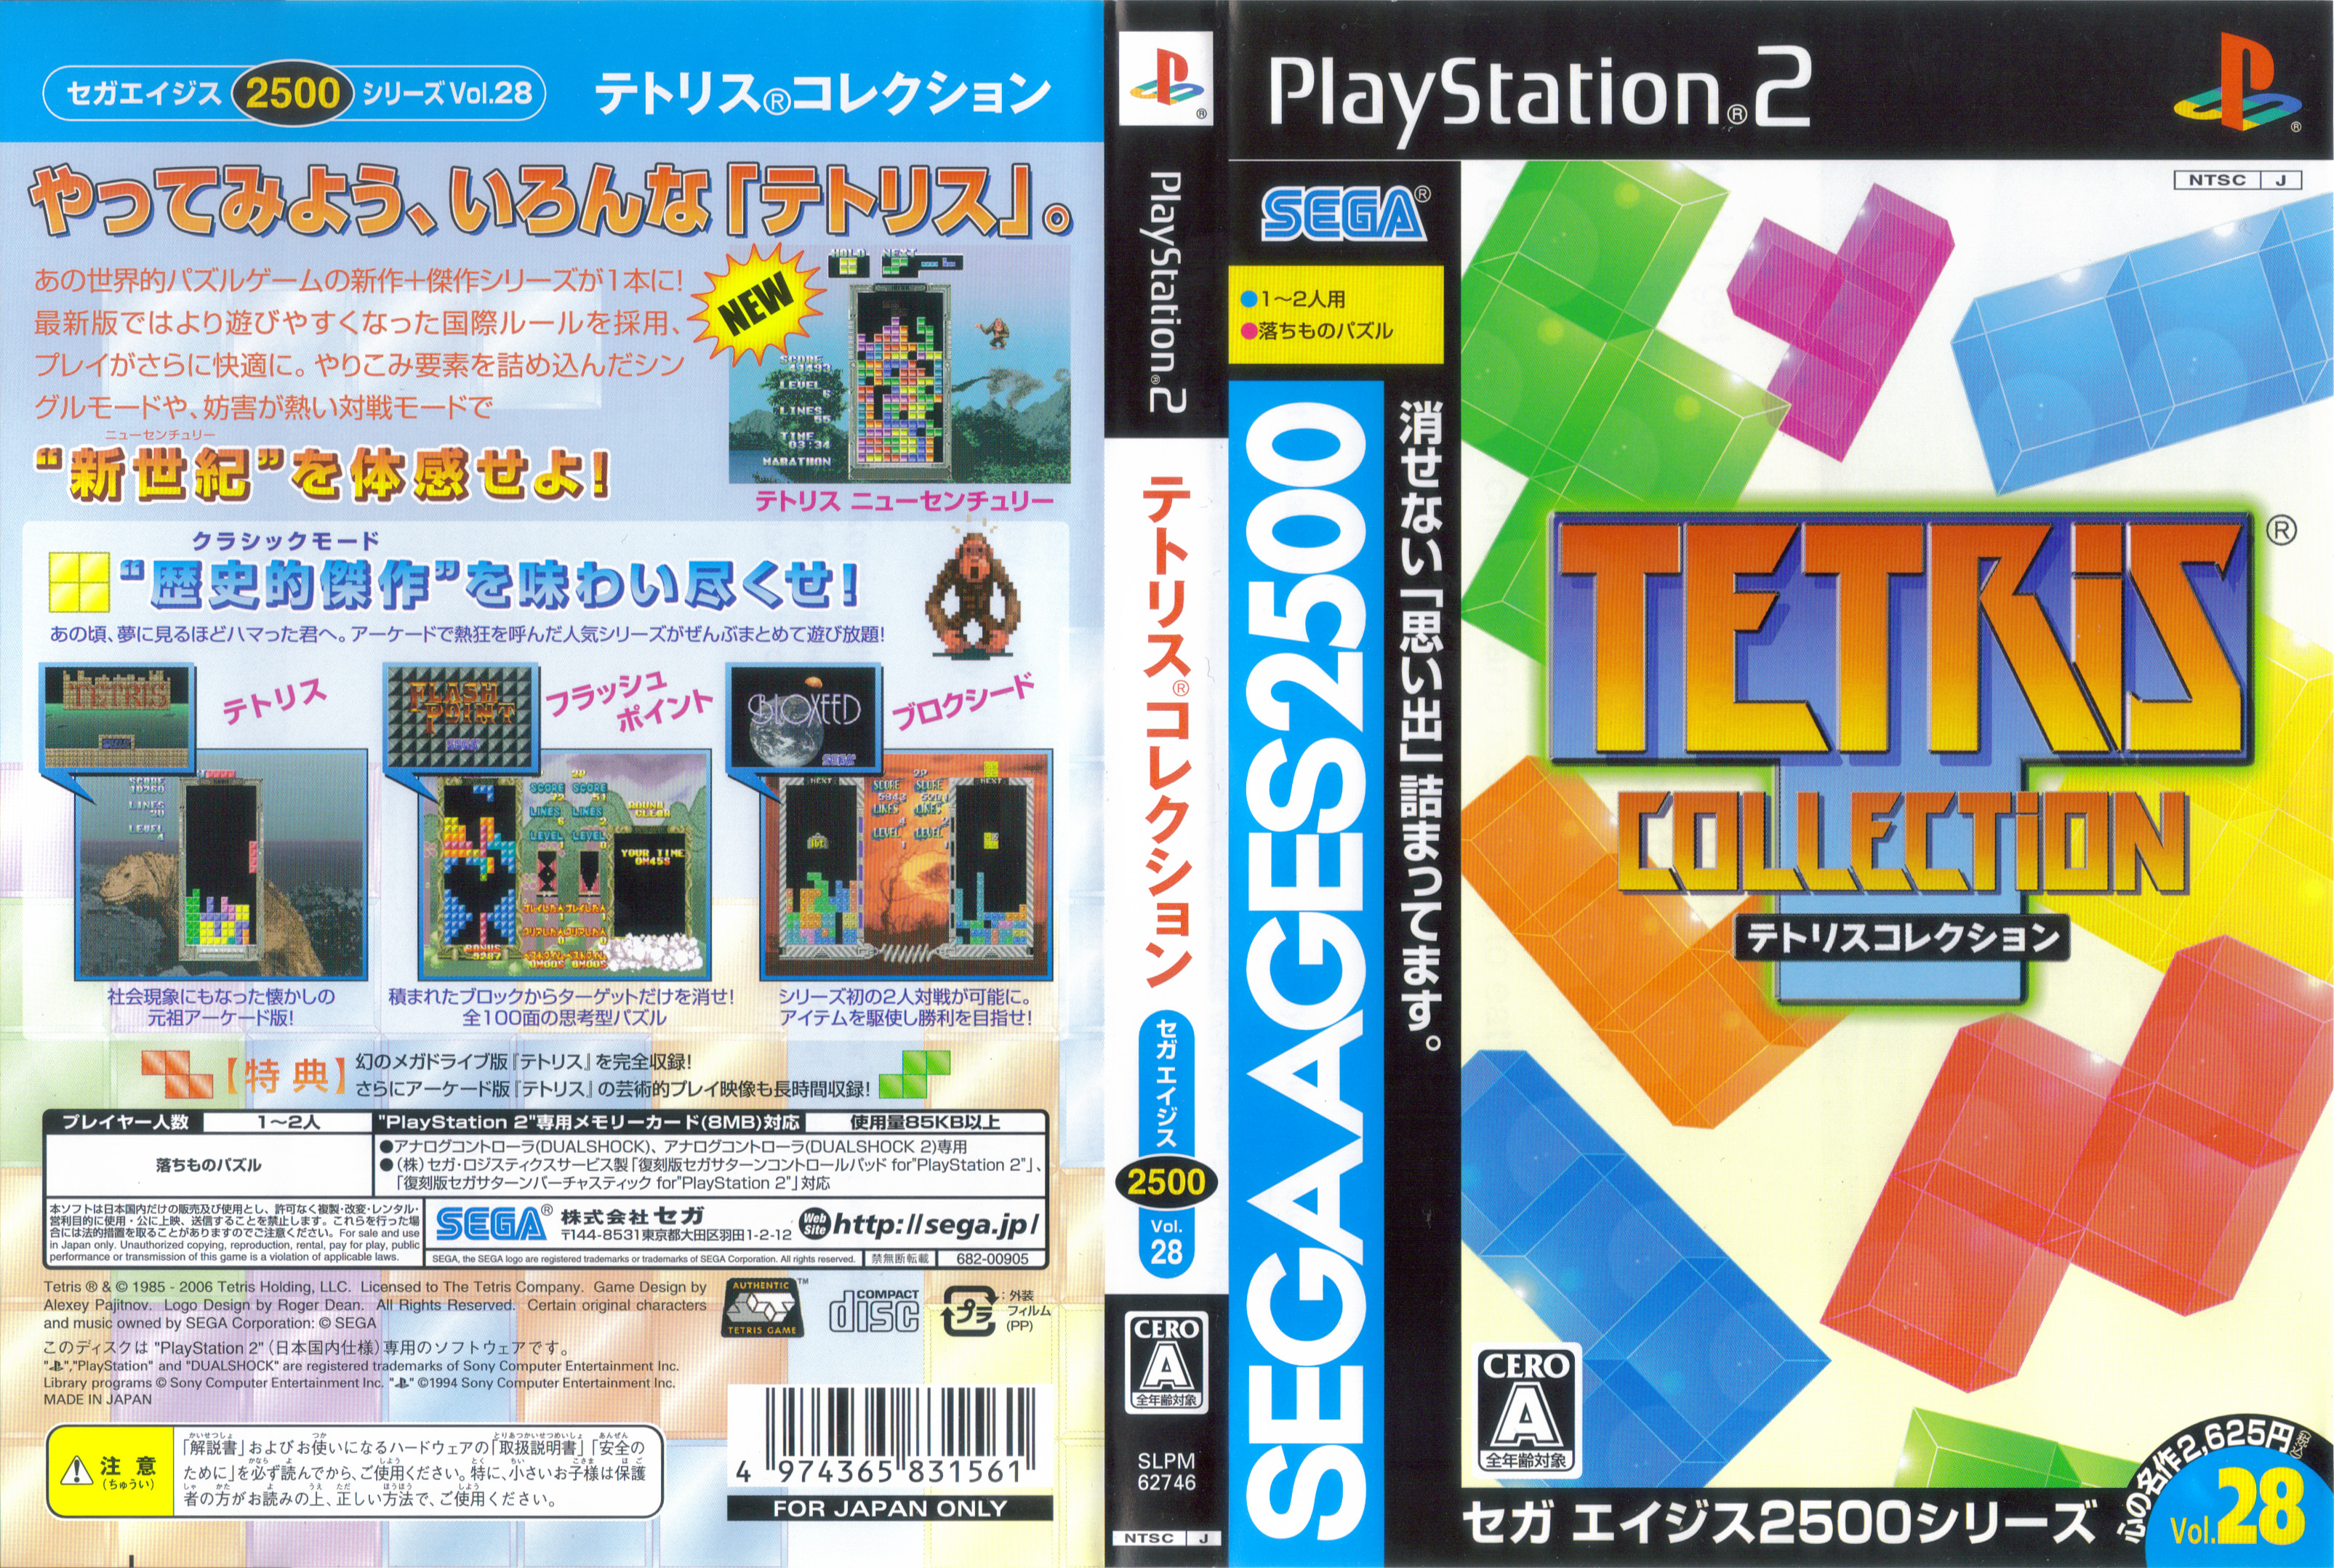 tetris collection